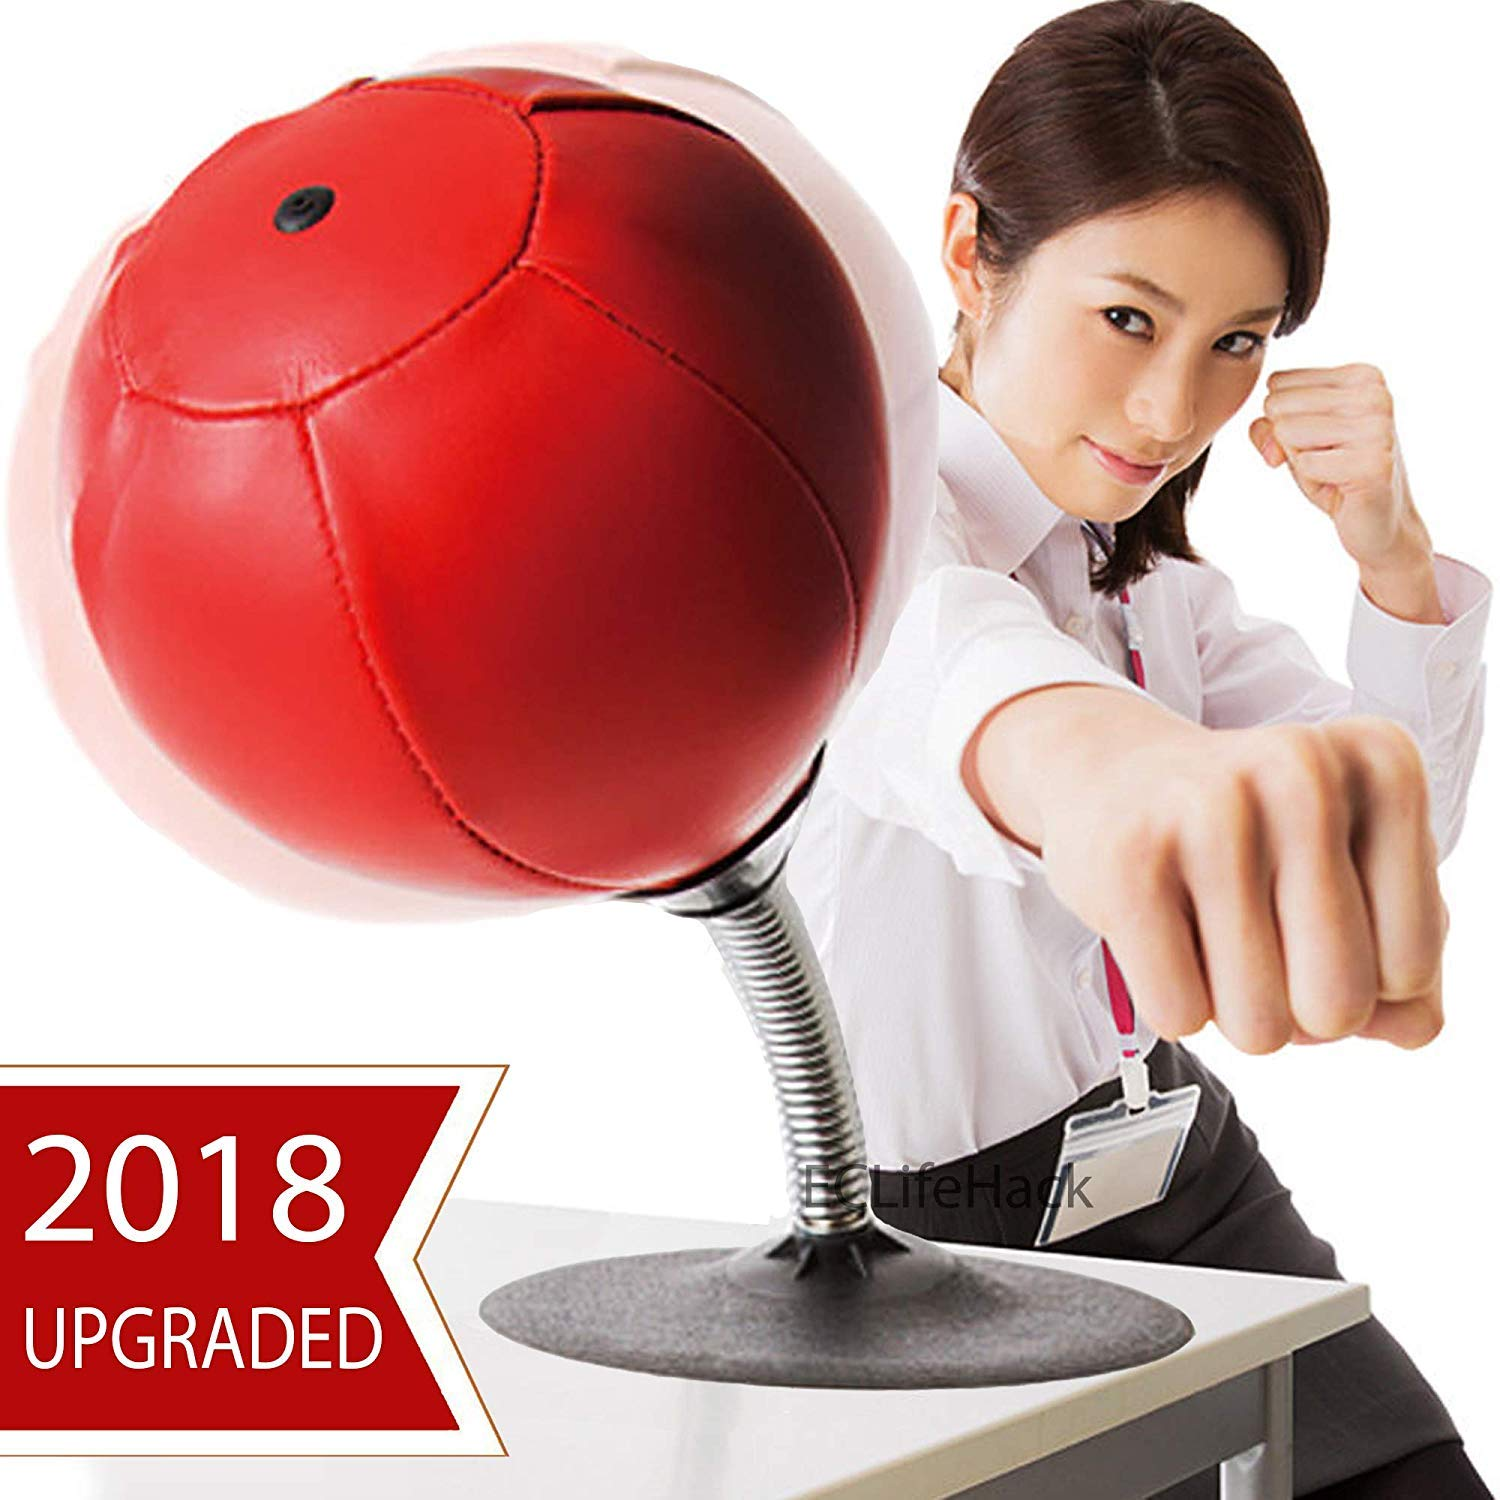 Simplistic Plus Stress Buster Desktop Punching Ball Super Strong Suction Cup, Pump Included – Just Punch Me!